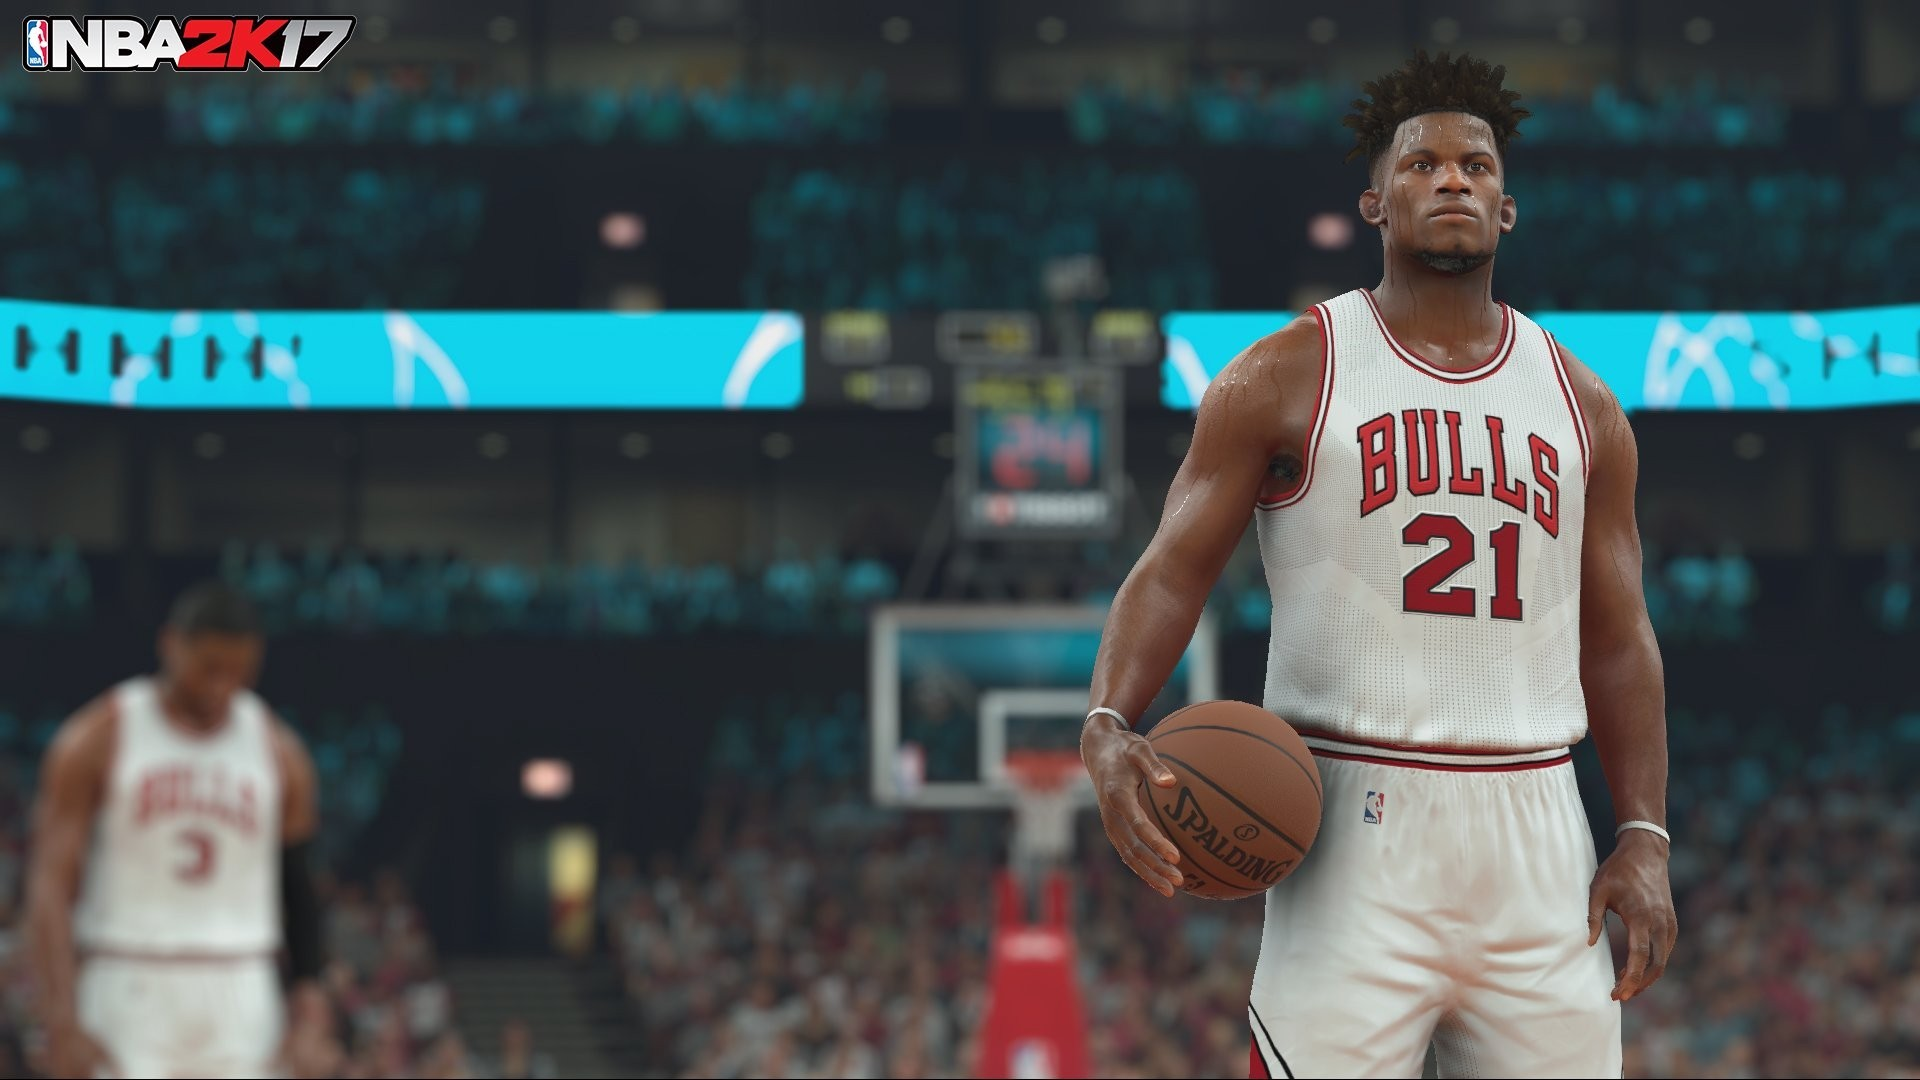 Check out the NBA 2K17 screenshot of Jimmy Butler and post your thoughts.